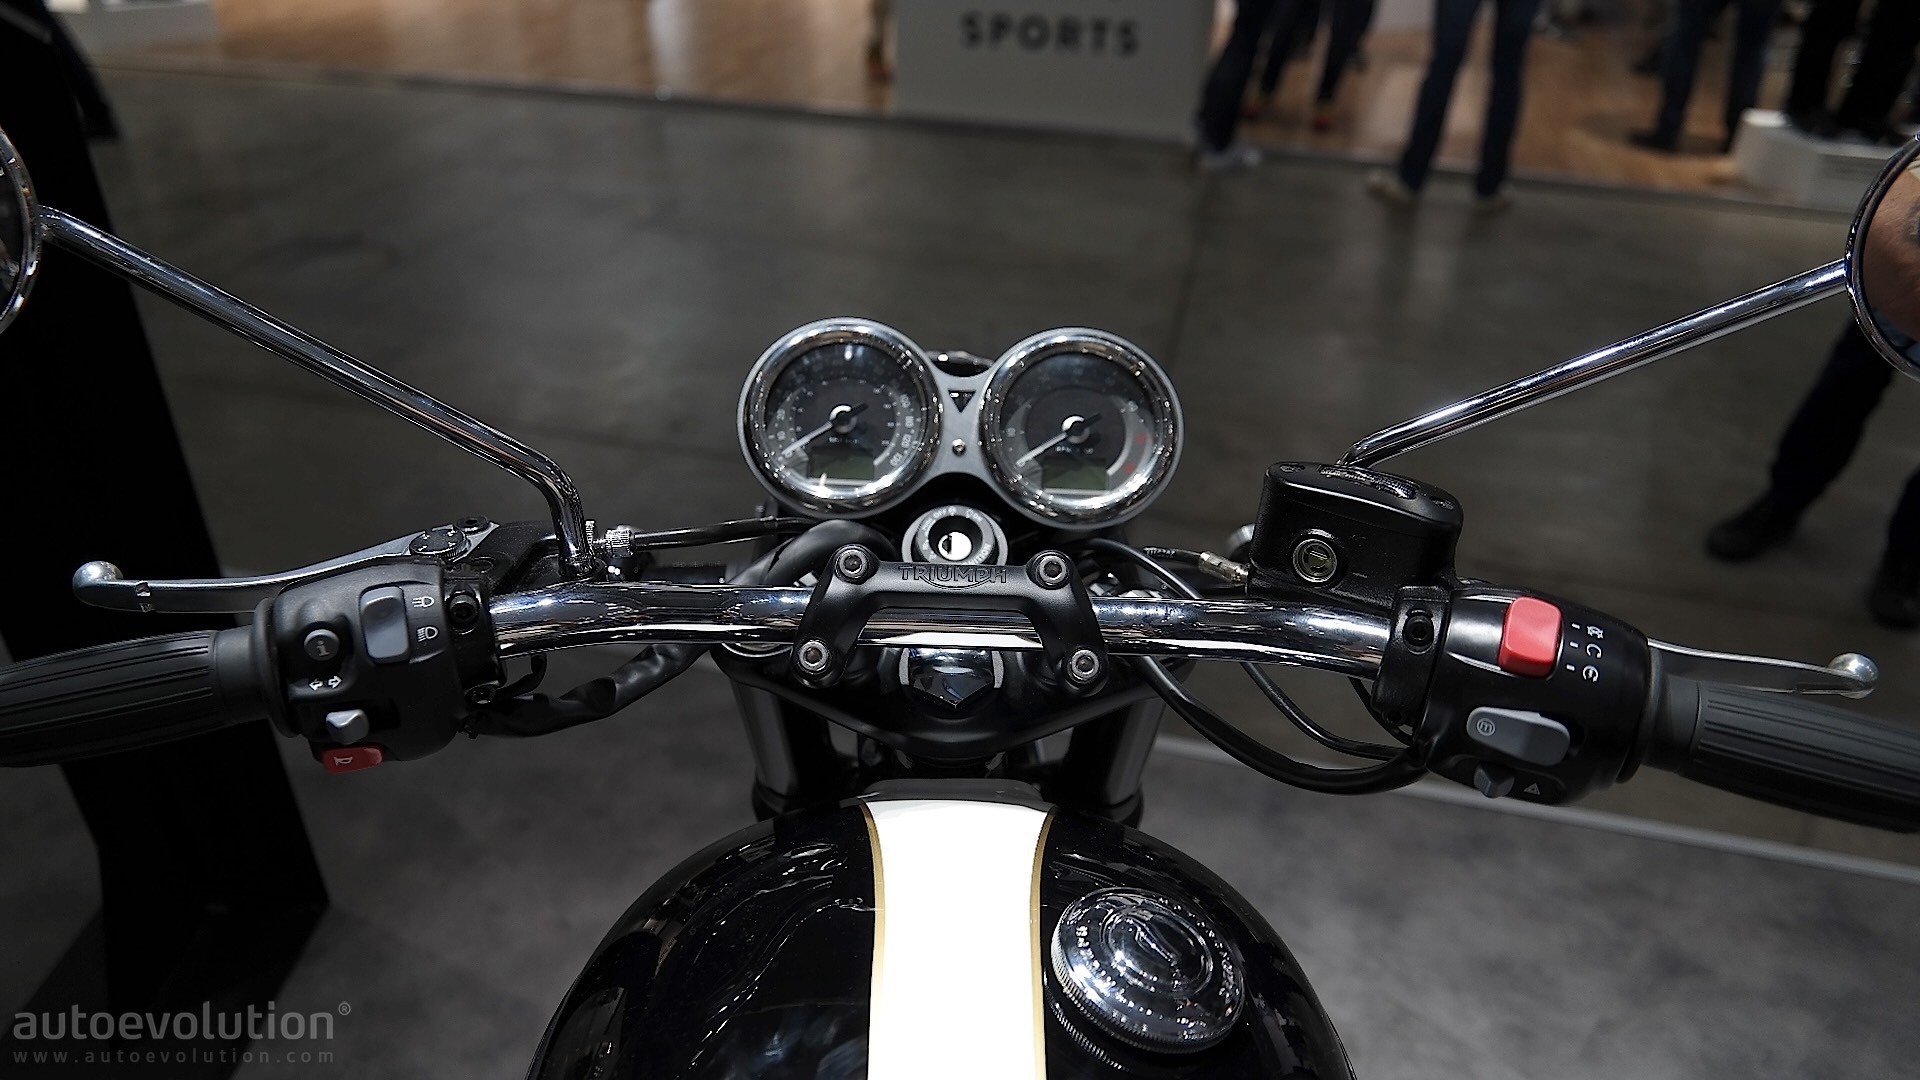 hight resolution of triumph bonneville t120 at eicma 2015 triumph bonneville t120 at eicma 2015